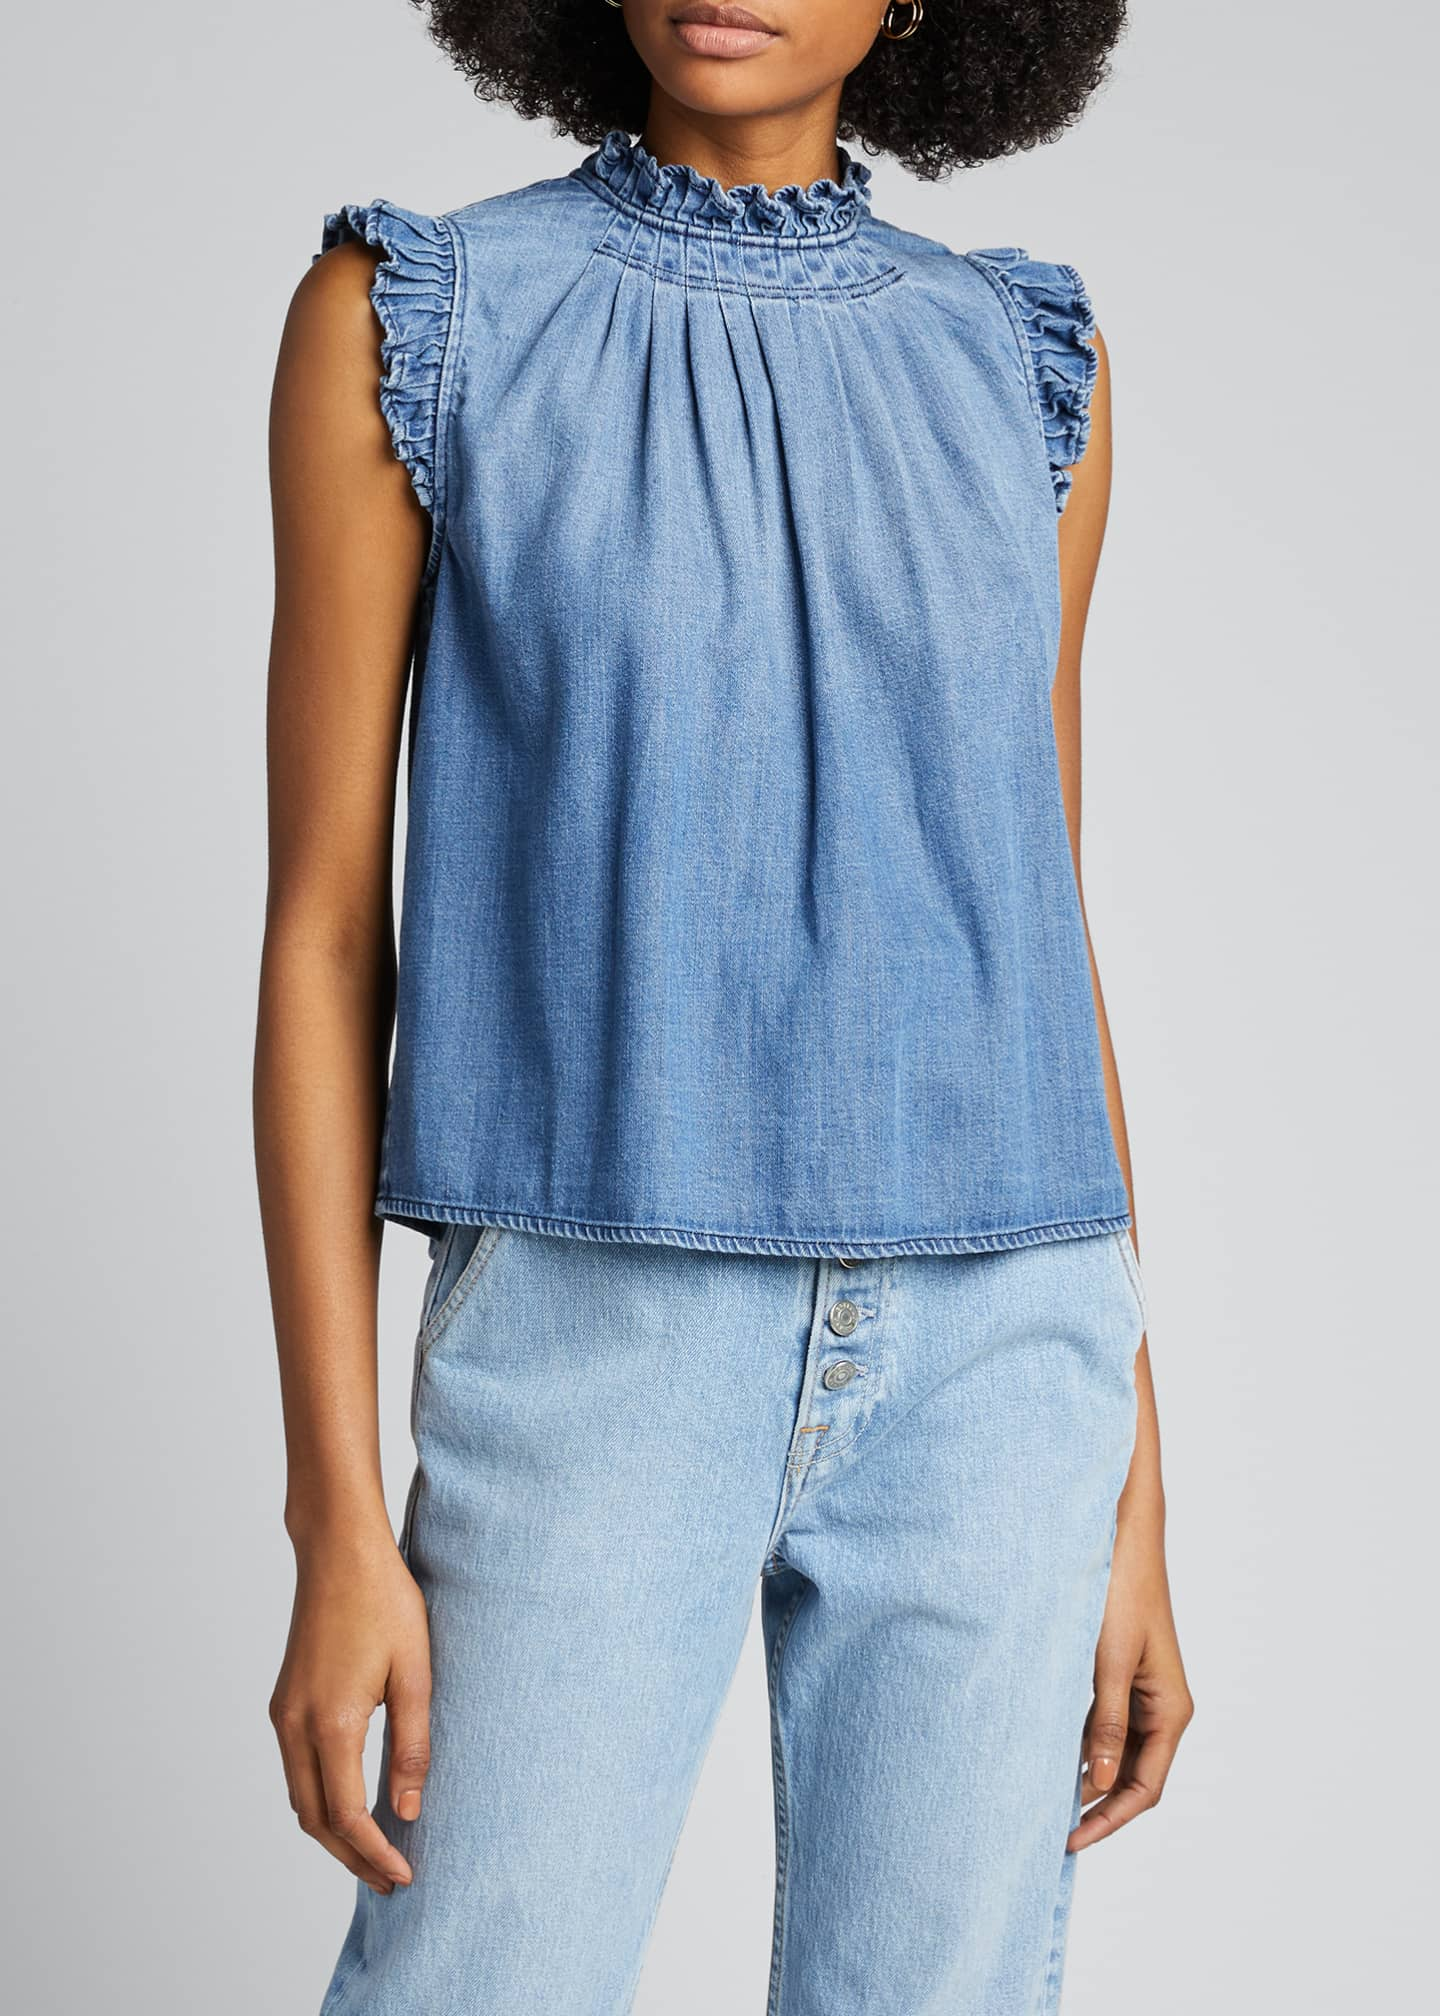 Image 3 of 5: Ruffle Denim Sleeveless Top